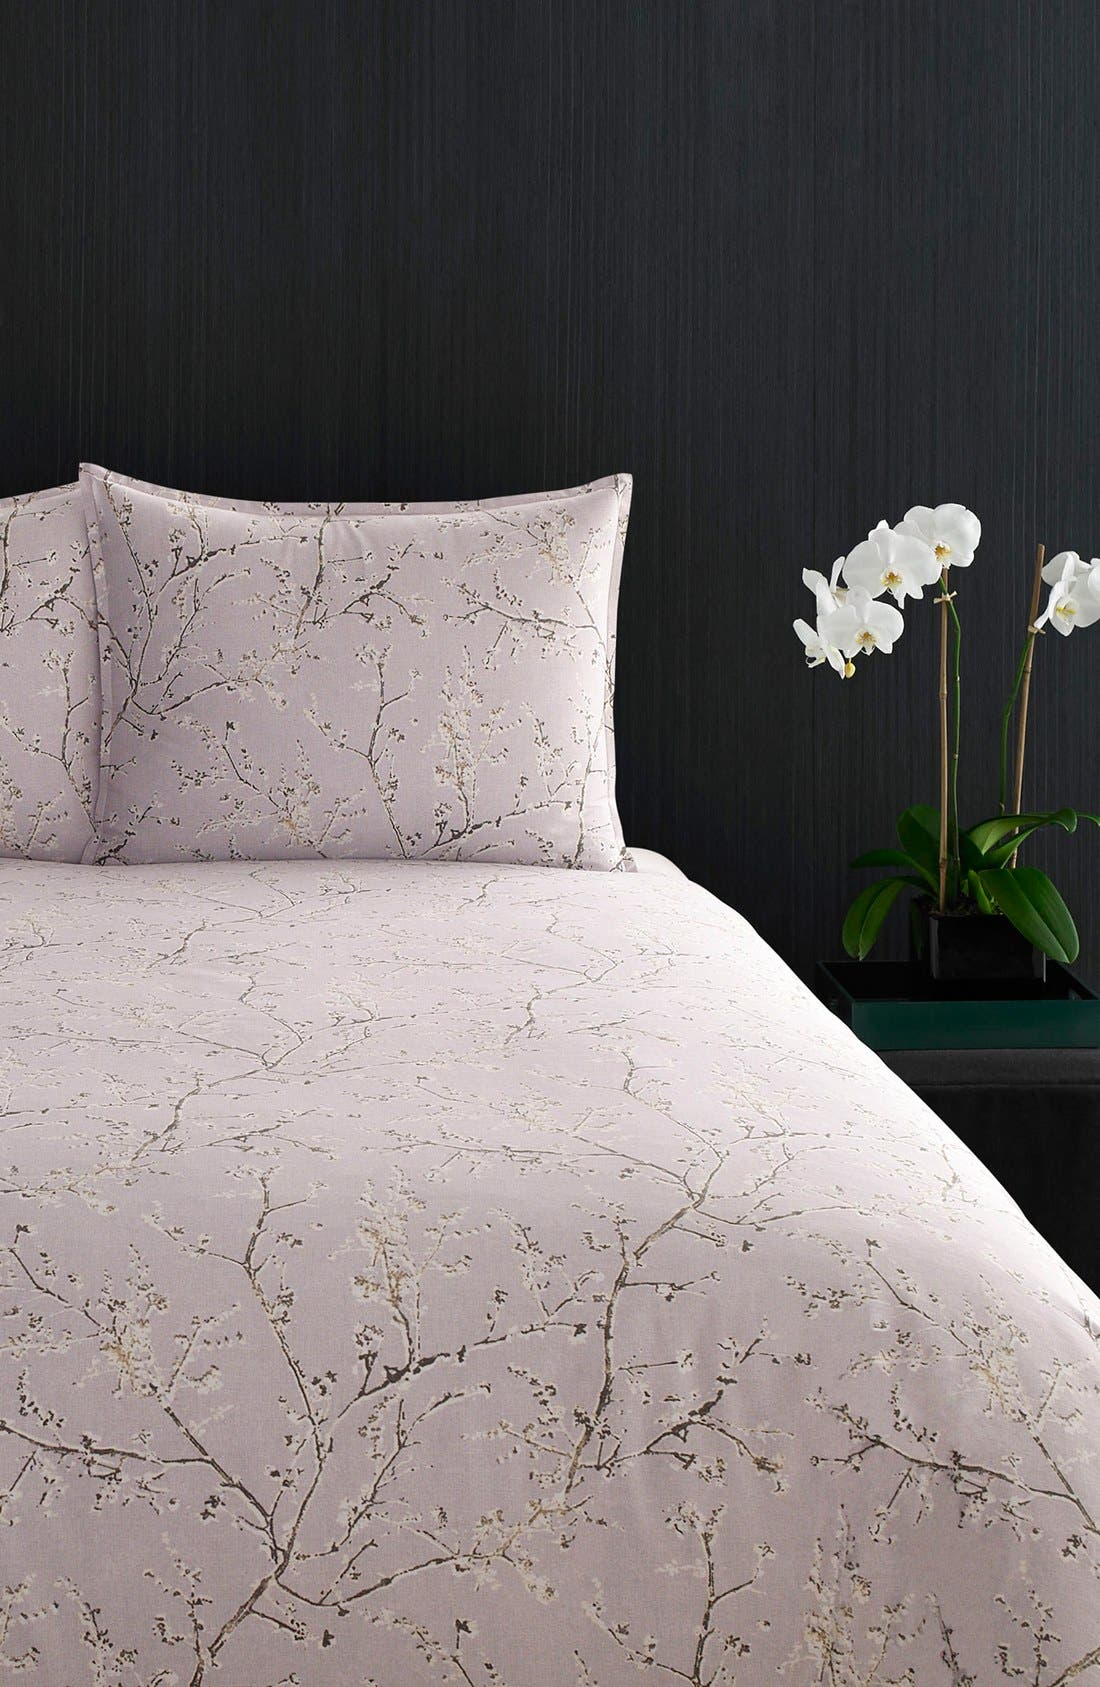 Main Image - Vera Wang 'Winter Blossoms' King Duvet Cover